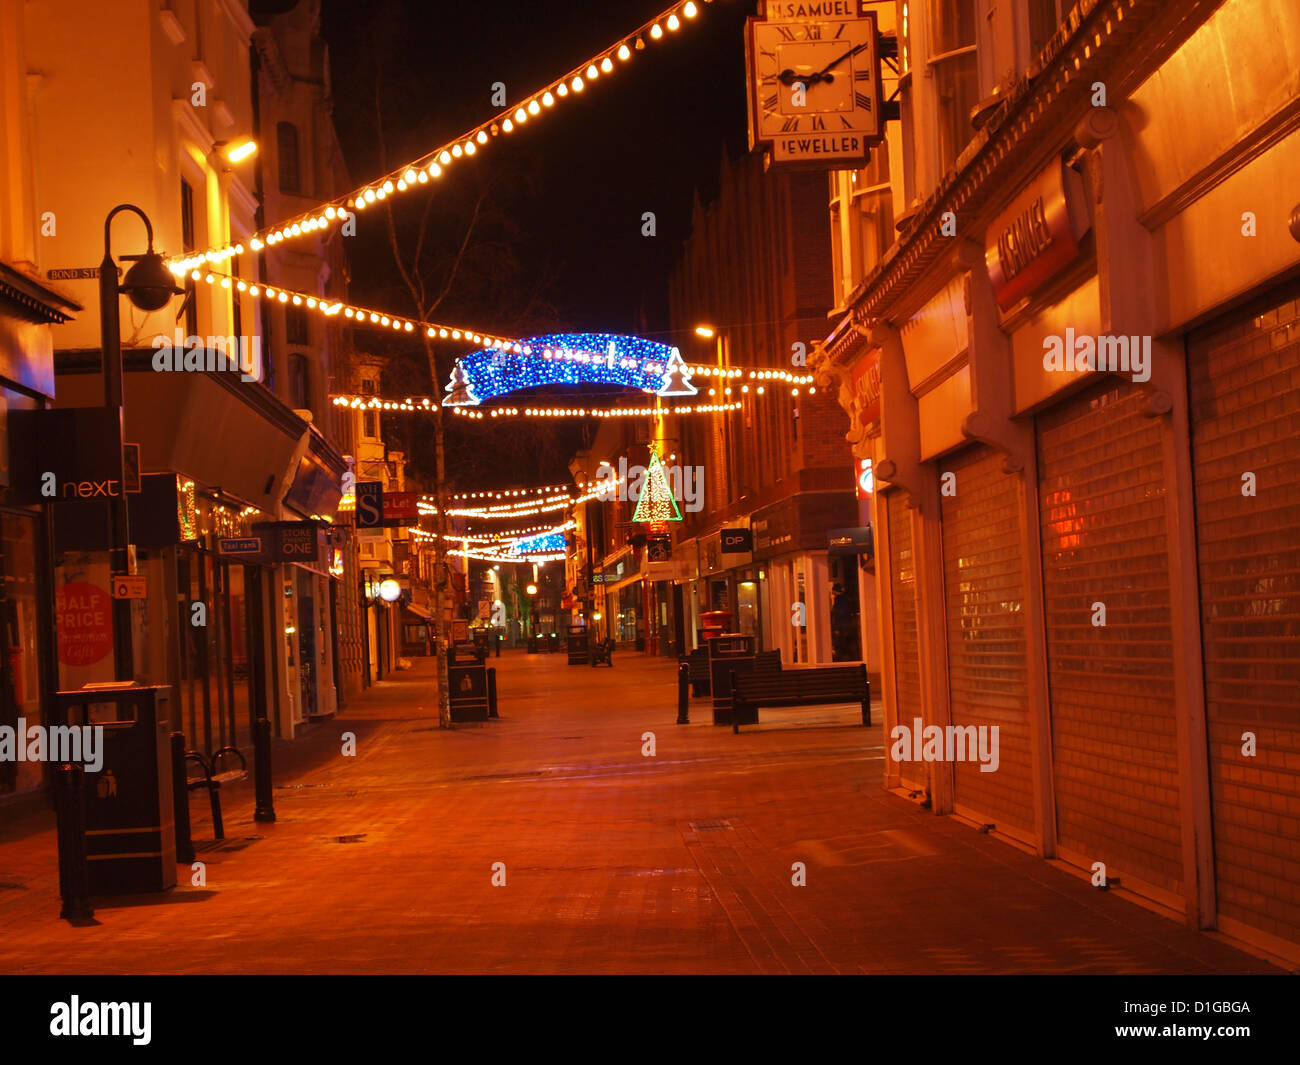 Deserted high street at night with Christmas lights in Weymouth, Dorset UK - Stock Image